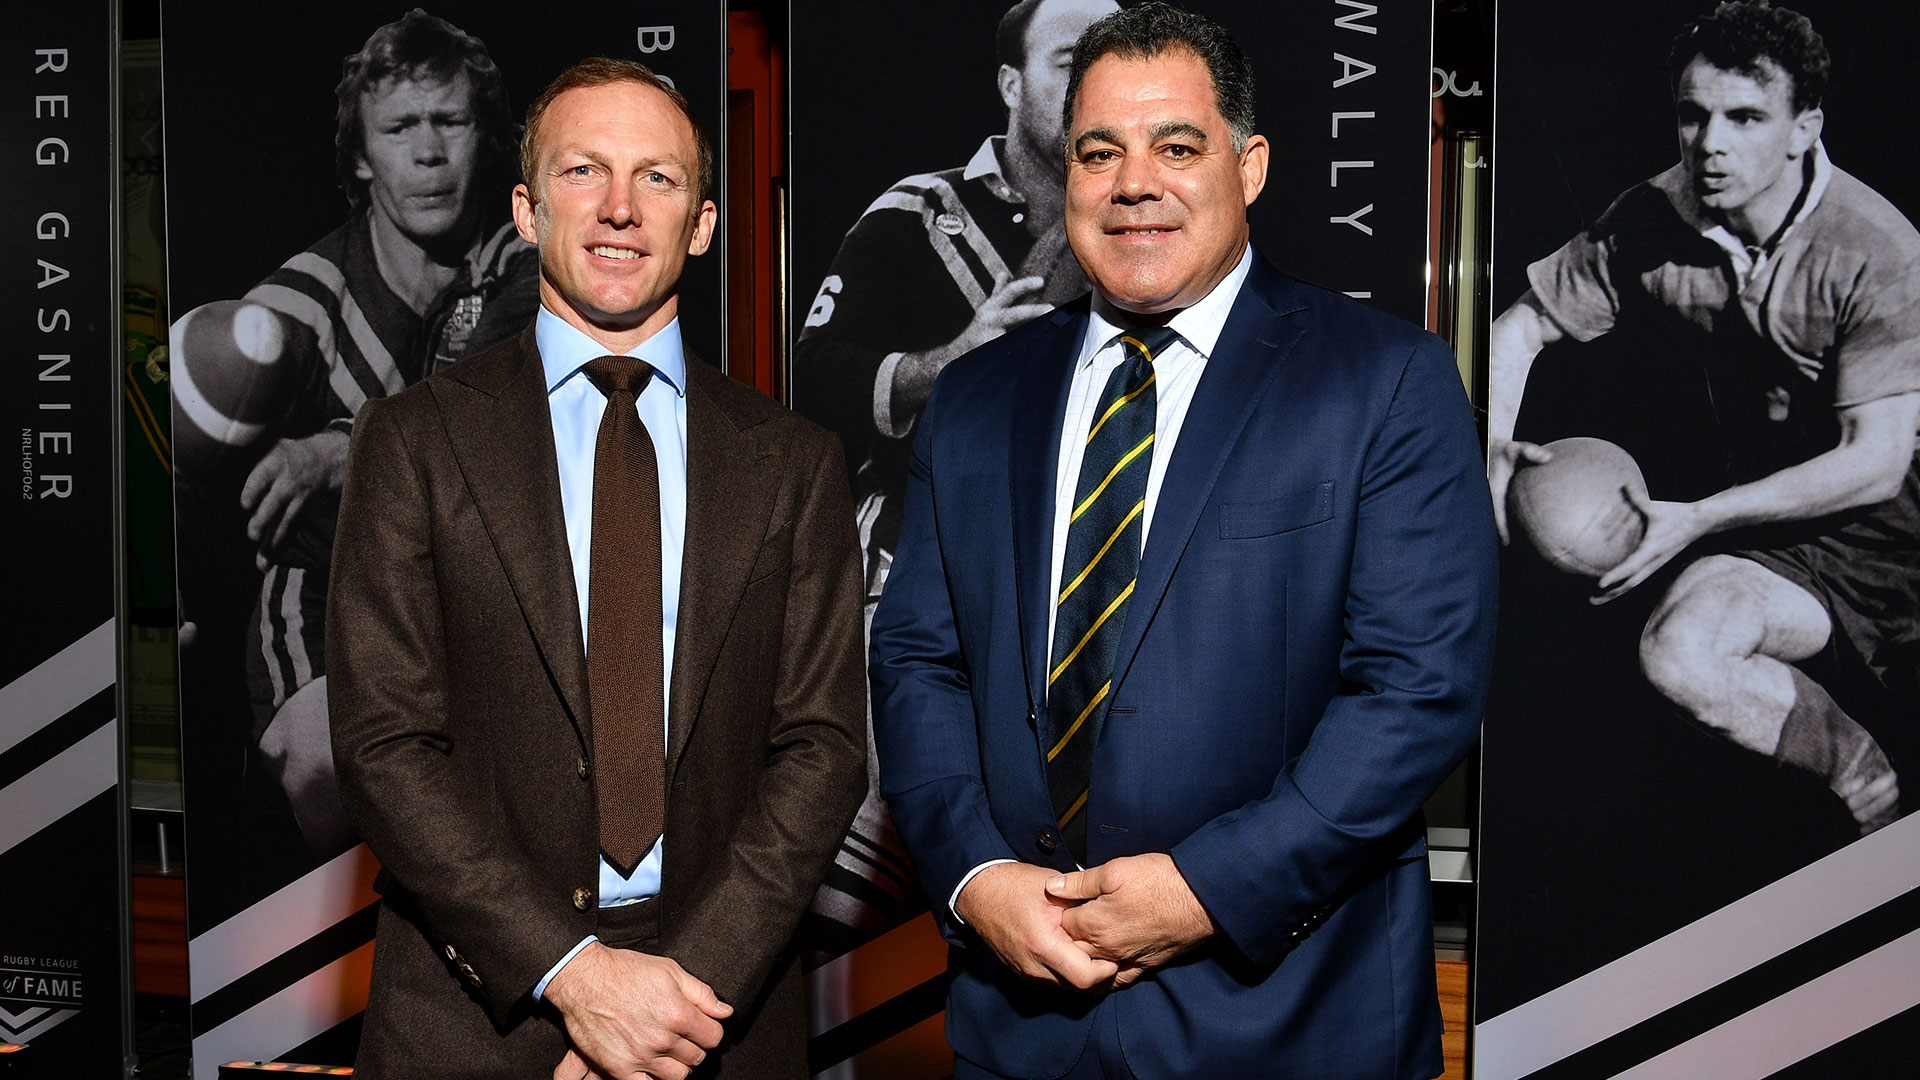 Meninga and Lockyer humbled by Immortals shortlist